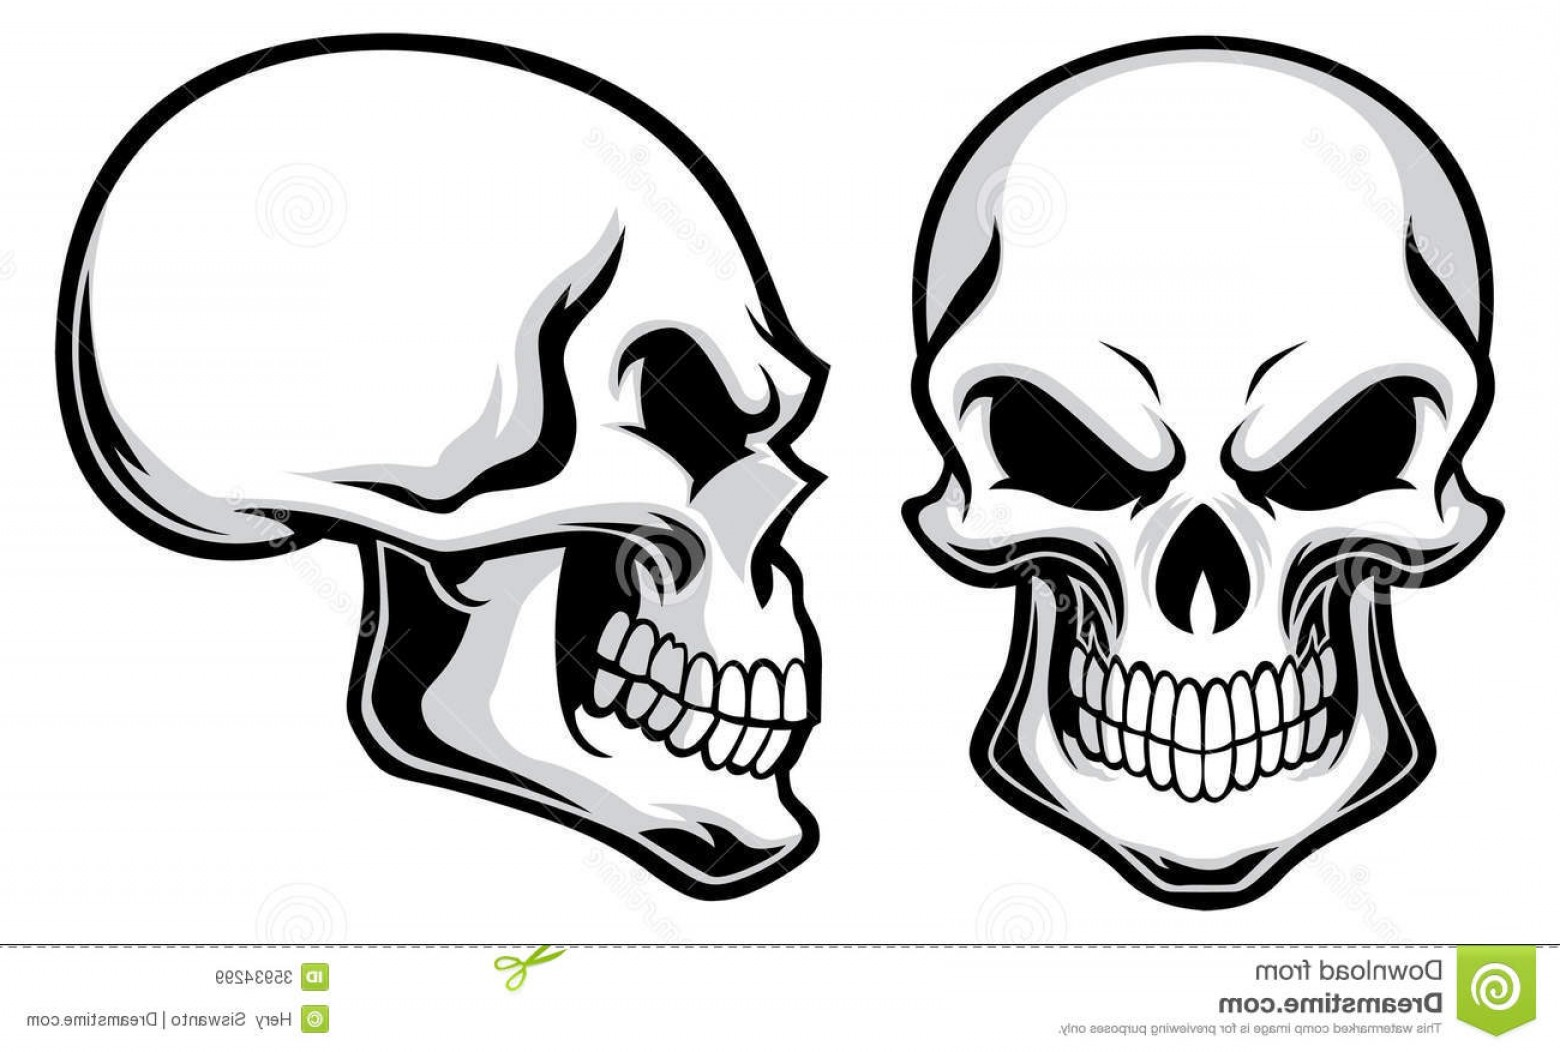 Cool Skull Vector: Royalty Free Stock Images Cartoon Skulls Vector Separated Easy To Edit Image